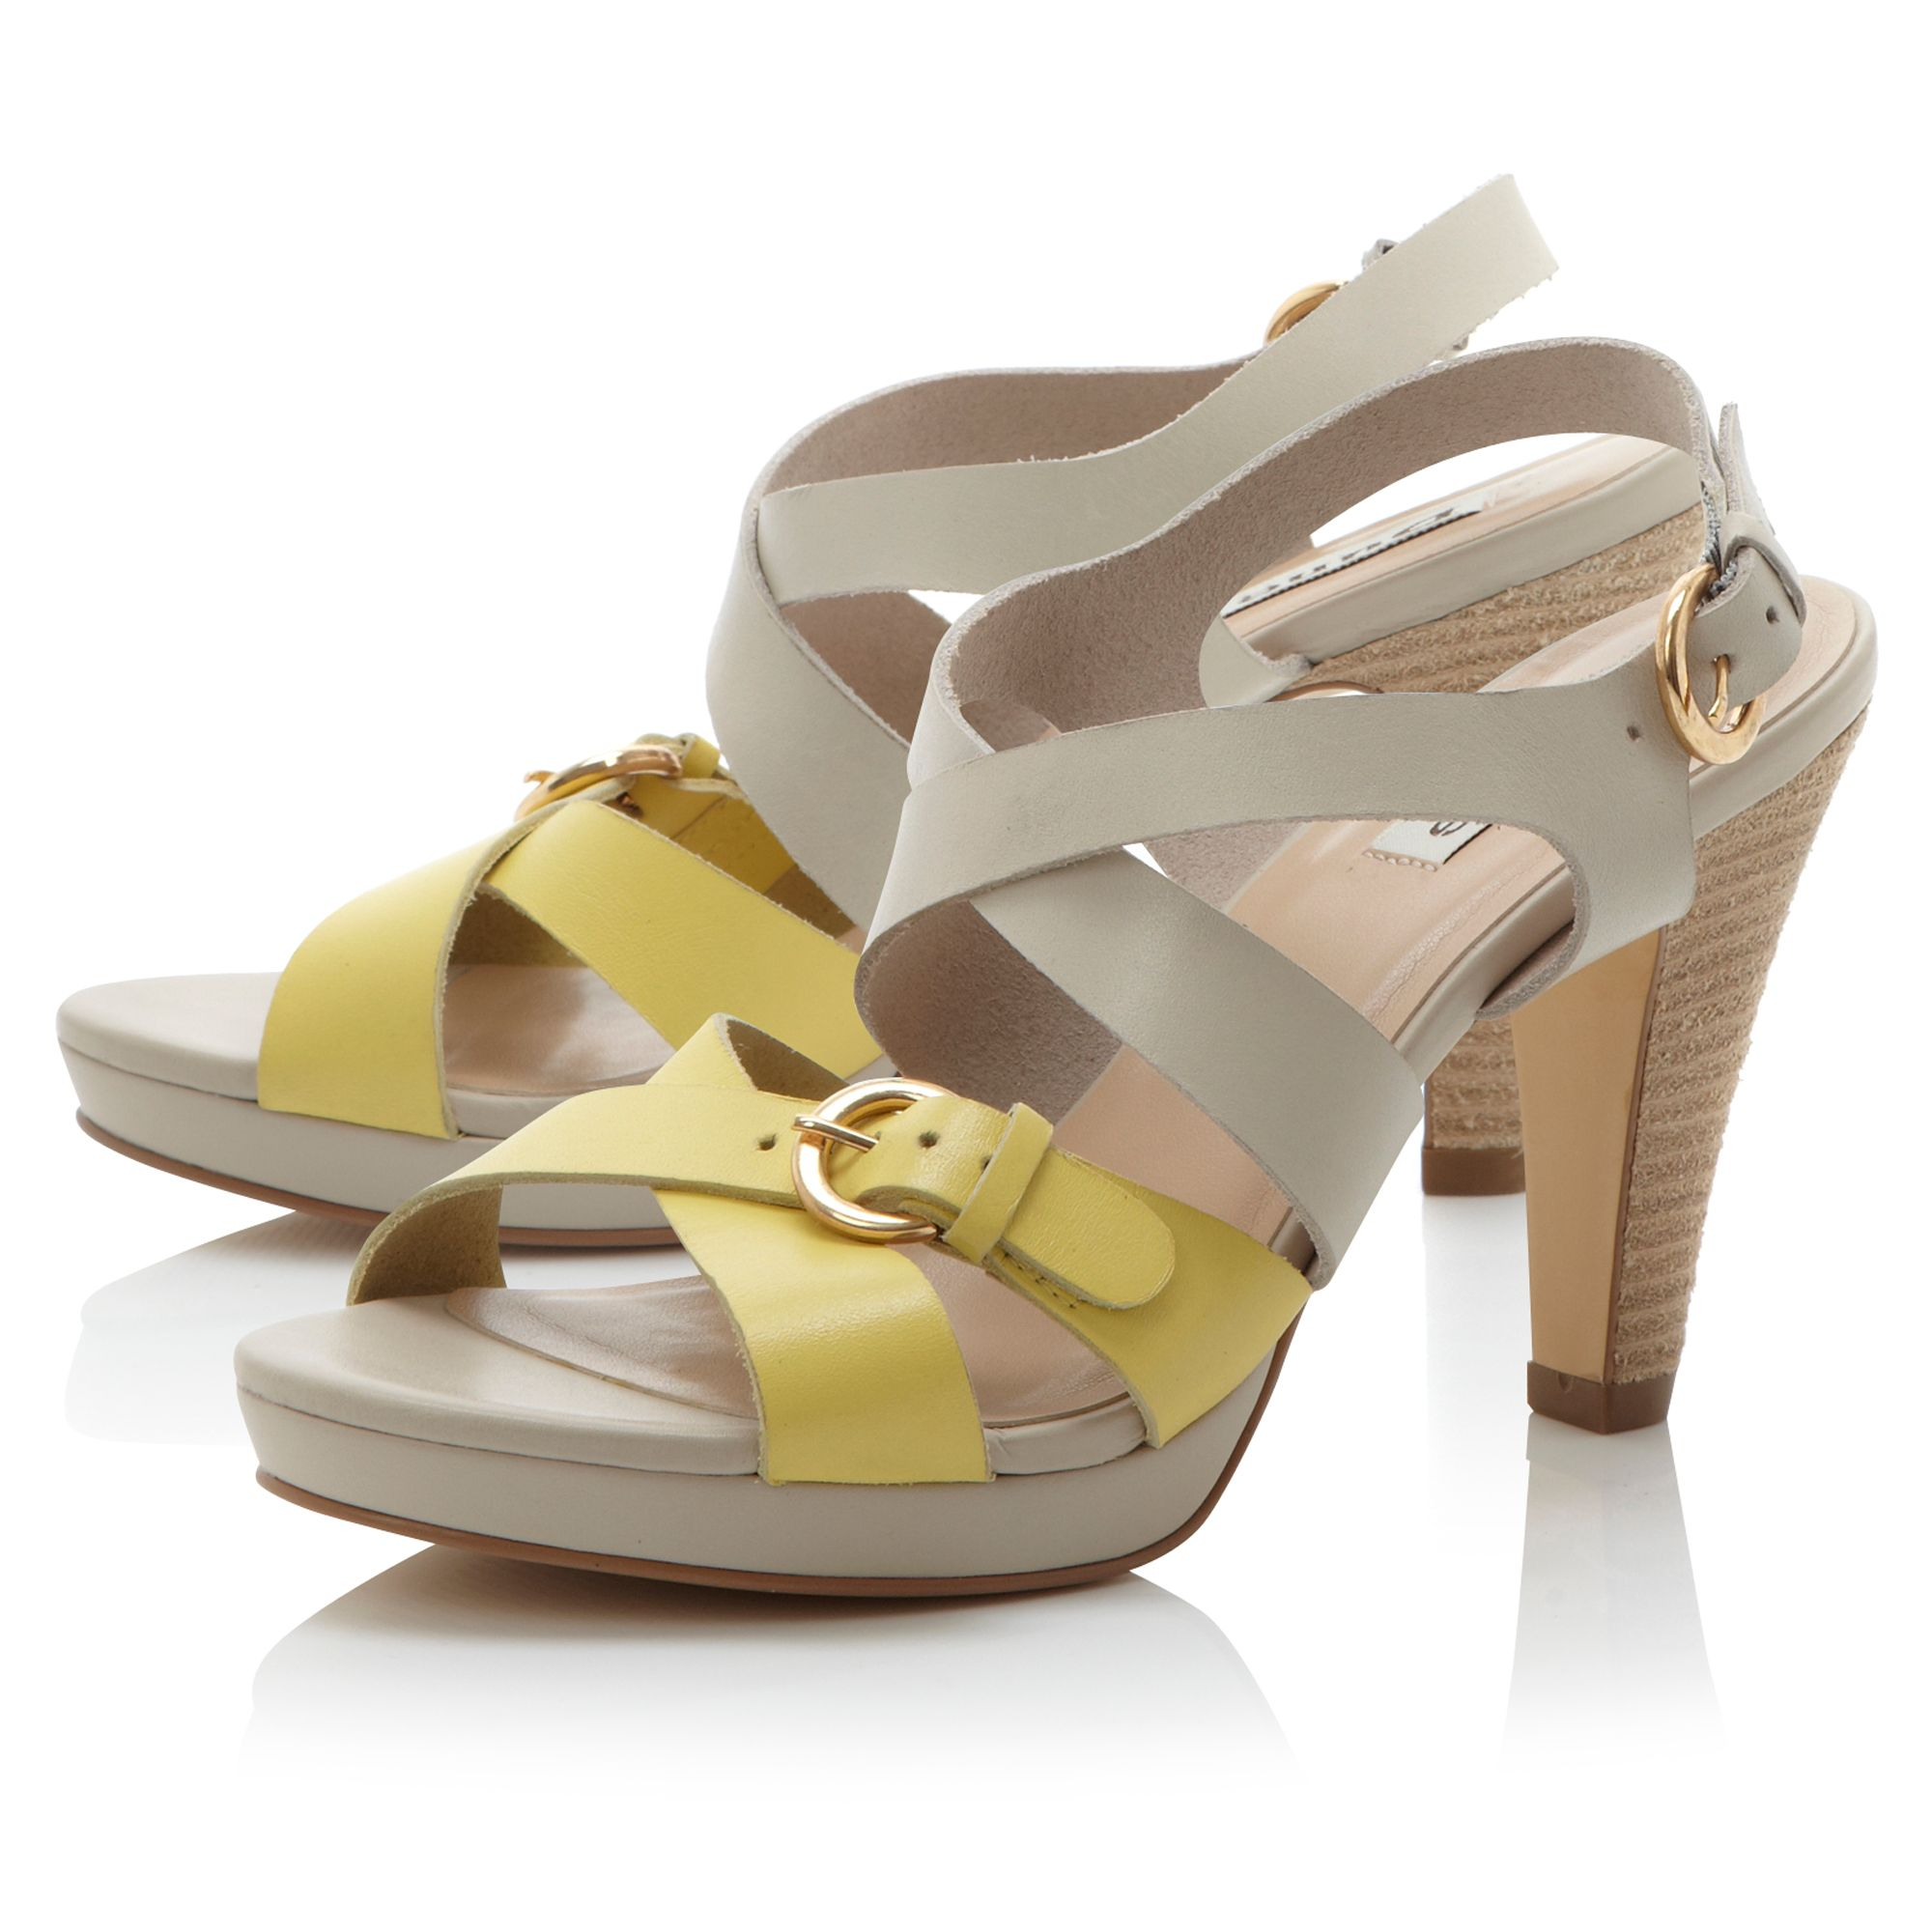 Feminine cross strap heel sandals